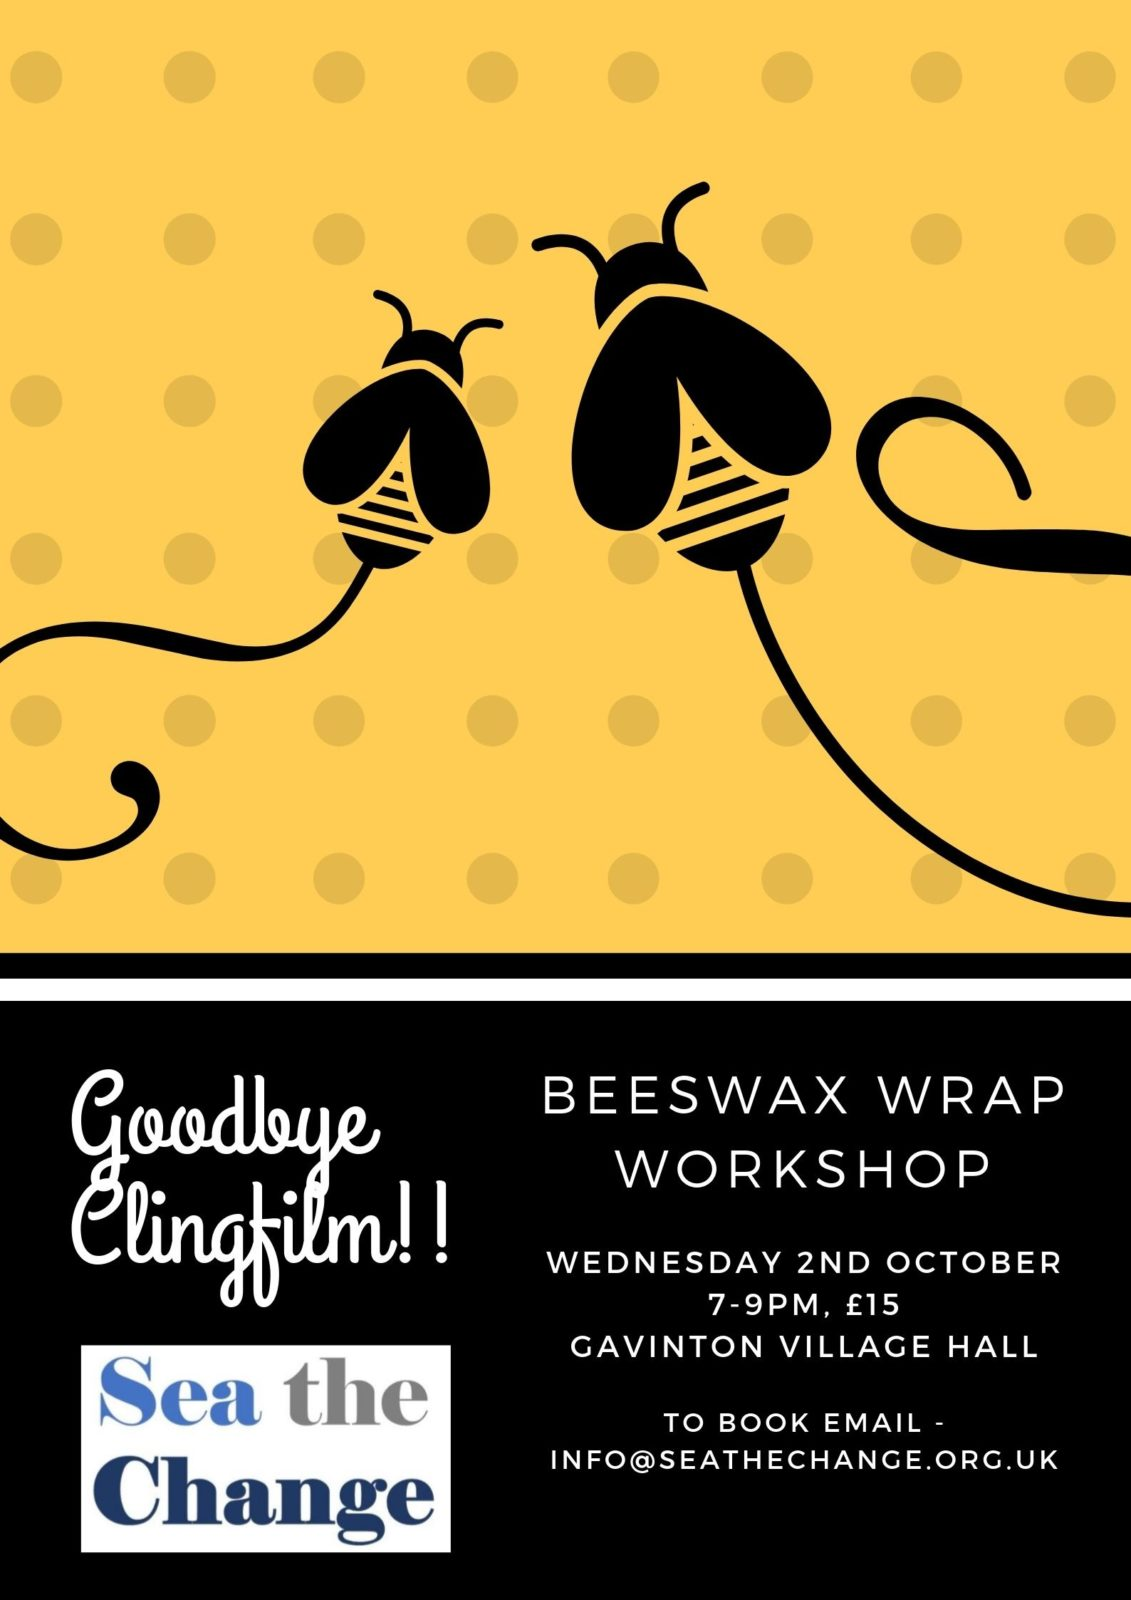 Beeswax Wrap Workshop - village hall